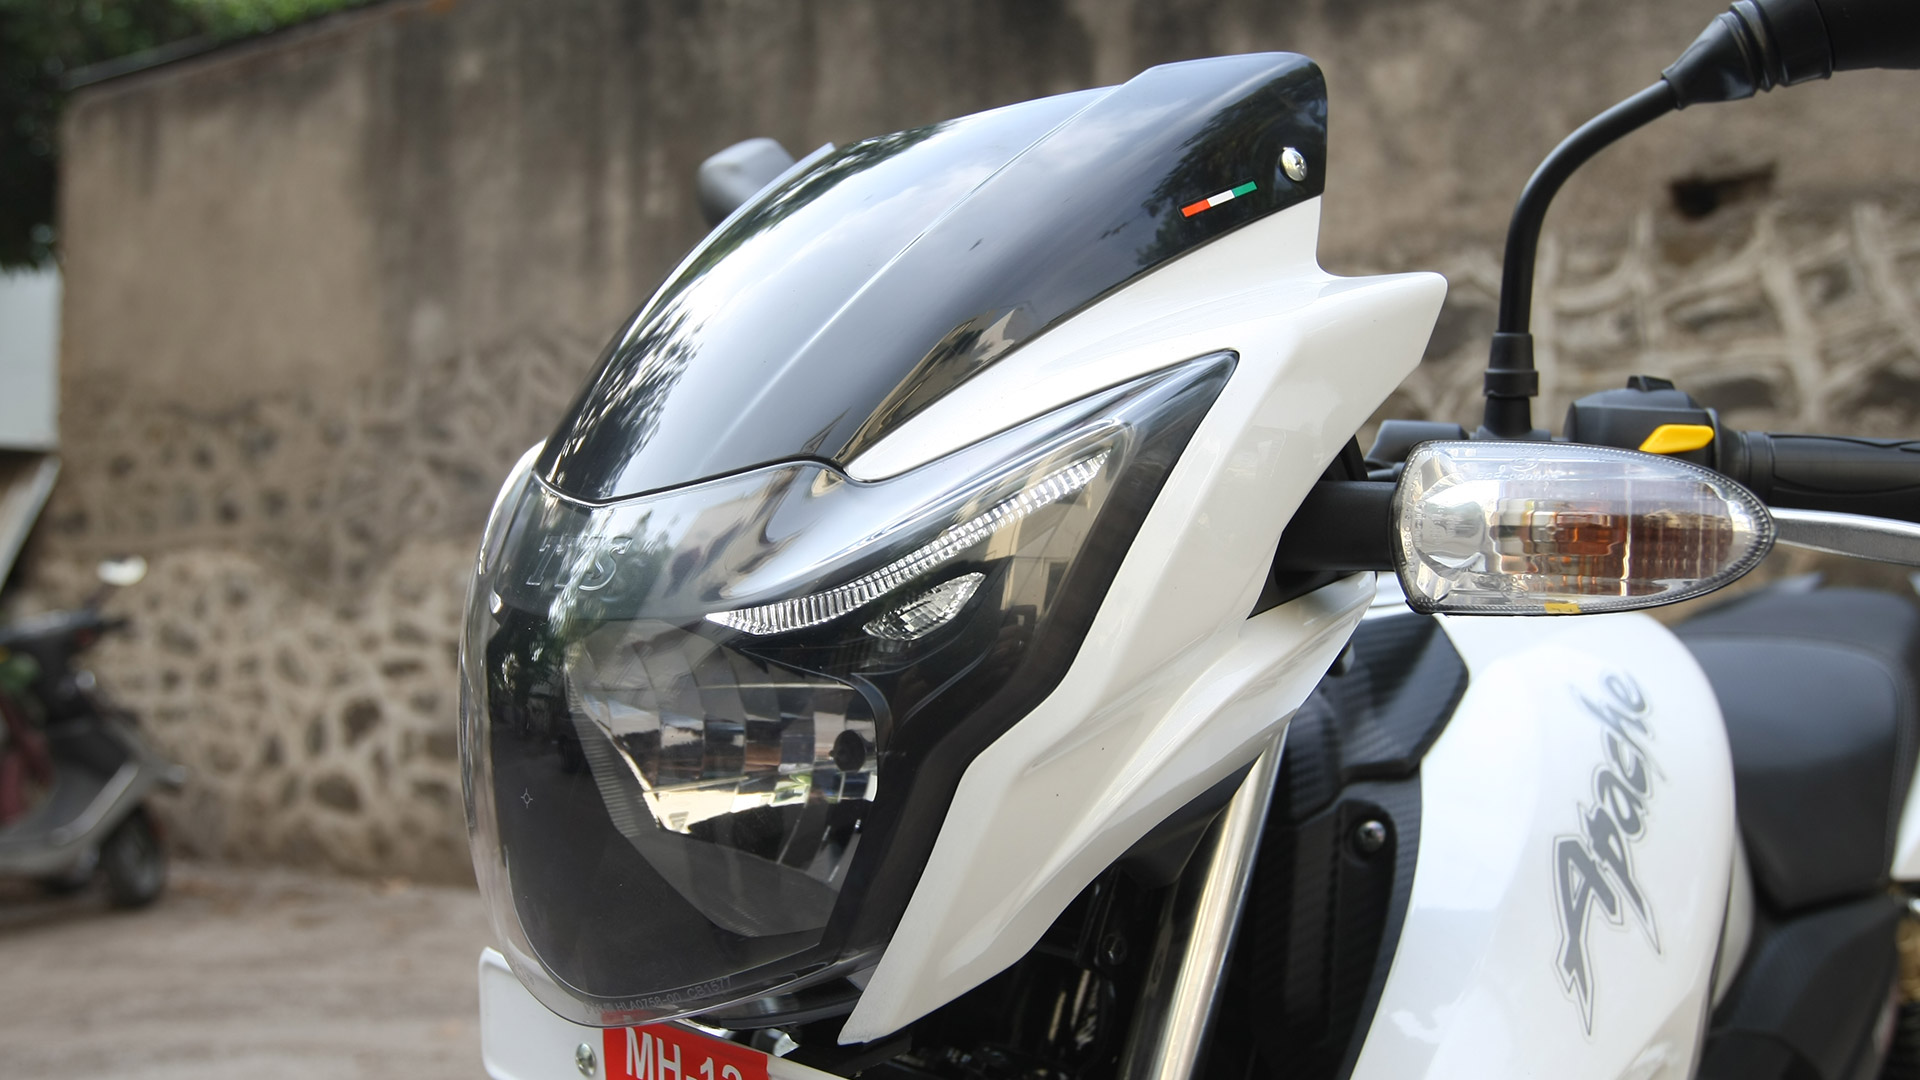 Tvs Apache Rtr 180 Abs Reviews Price Specifications Mileage